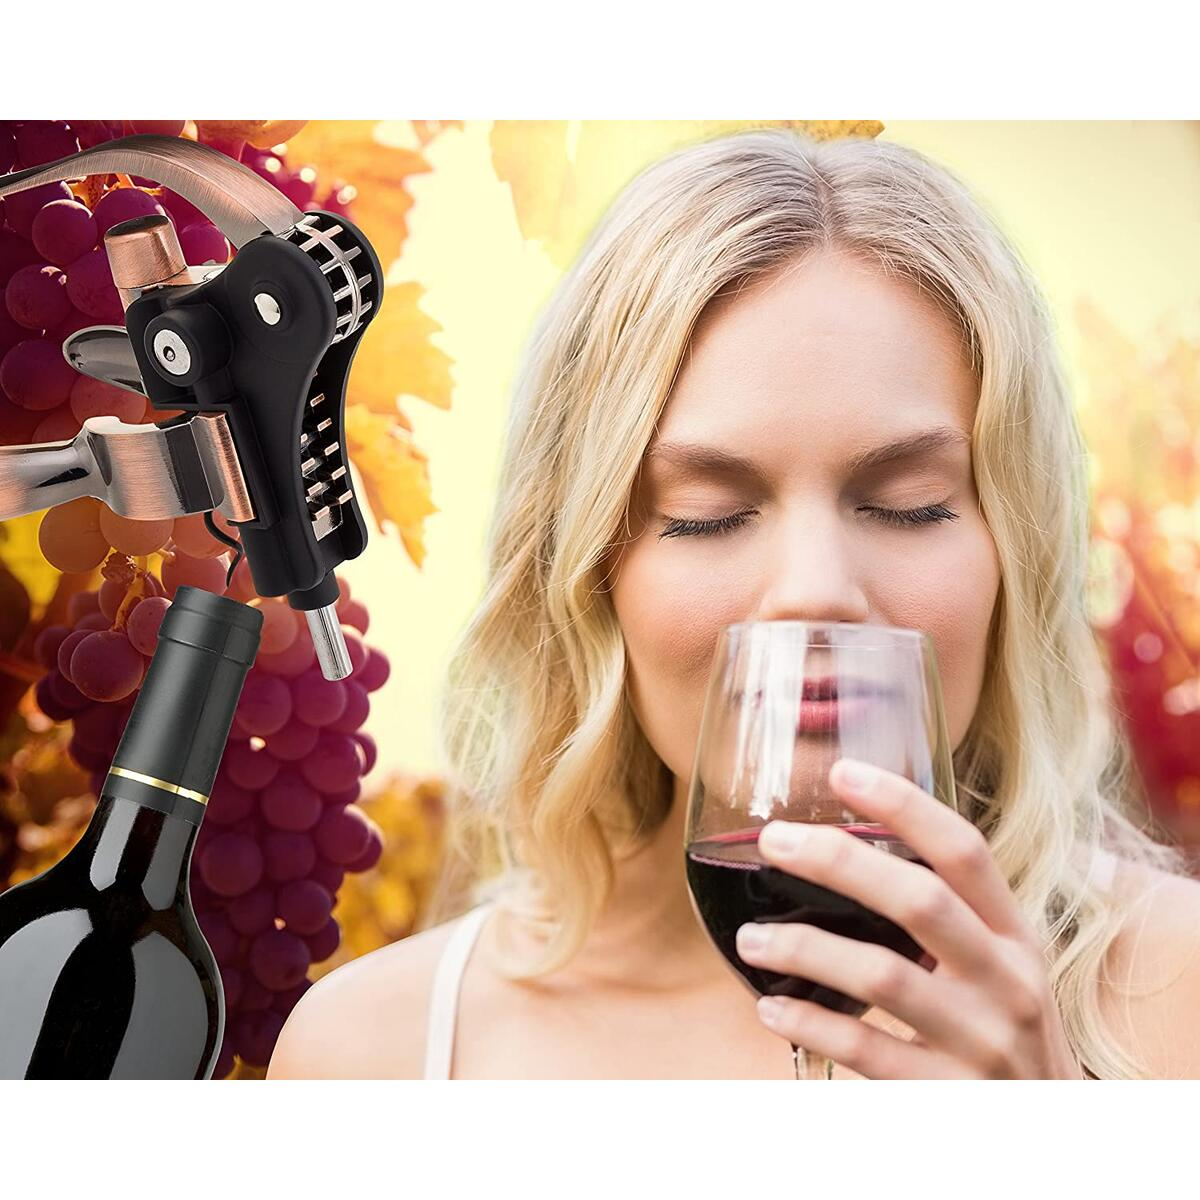 Best Wine Bottle Opener Corkscrew Set With Foil Cutter and Extra Screwpull, Unique Gifts For Mom, Women, Men, Her, Him, Anniversary, Birthday, Christmas, Couples